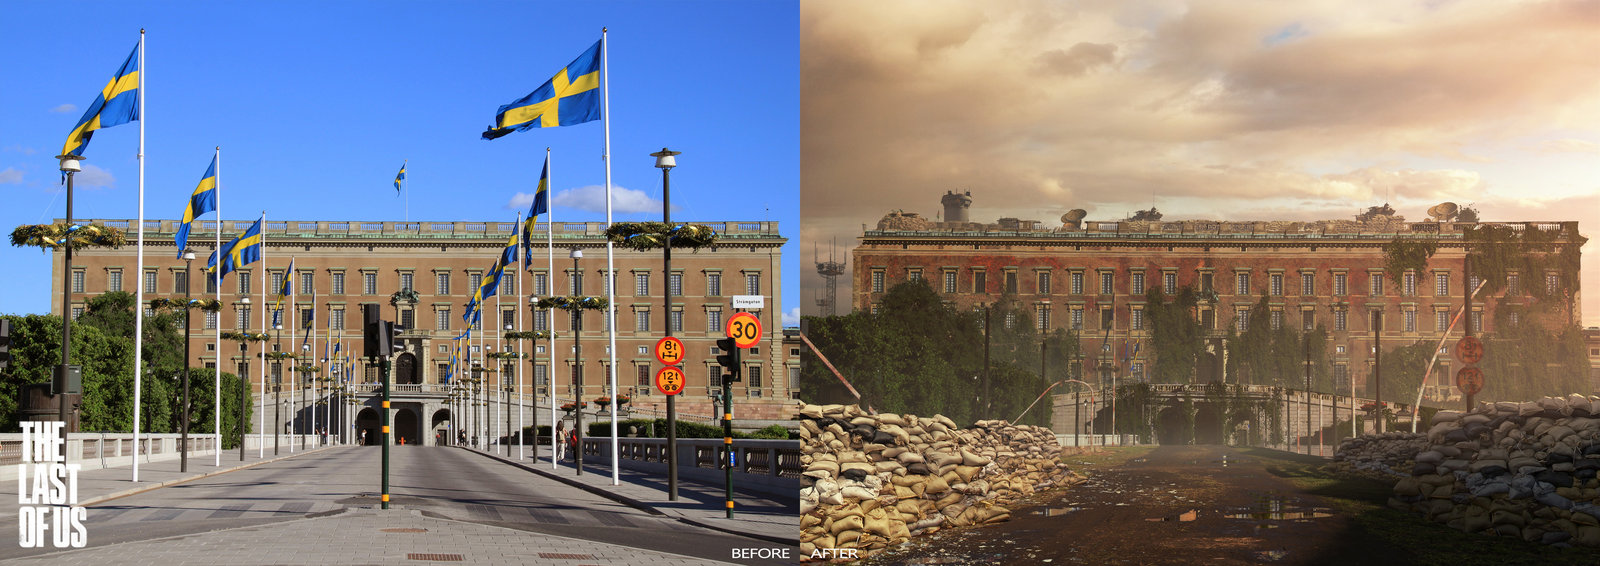 The Last of Us - Stockholm, Stockholm Palace